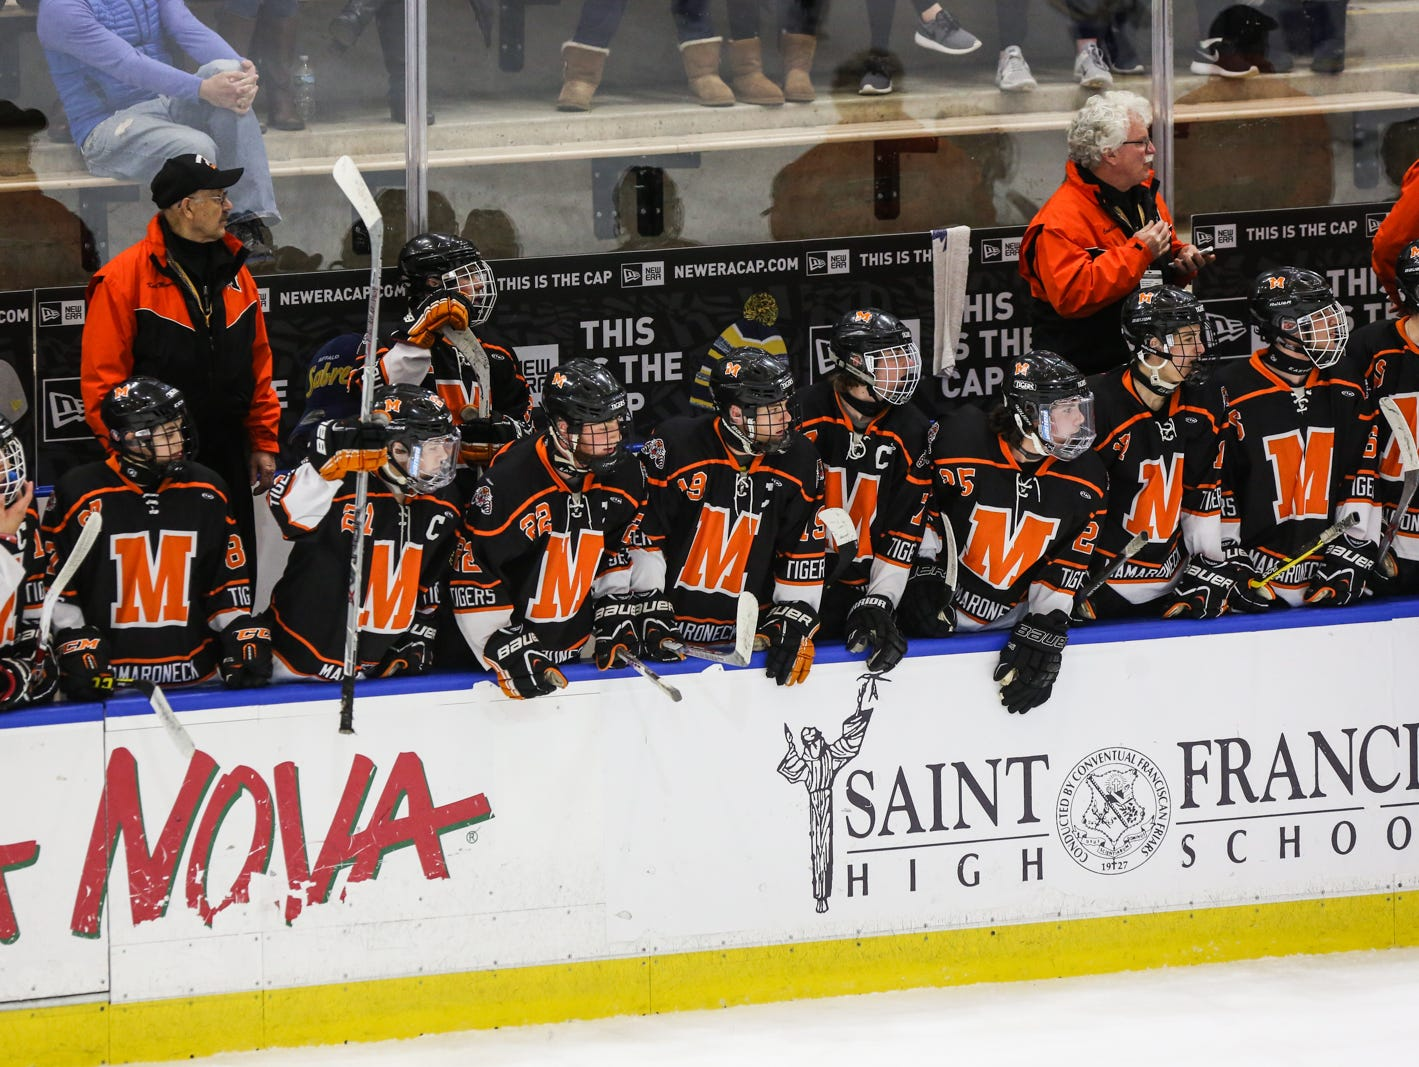 Mamaroneck players watch the game on the bleachers in the first period. Mamaroneck defeated West Genesee 1-0 and won the NYSPHSAA Division 1 HarborCenter in Buffalo, NY.